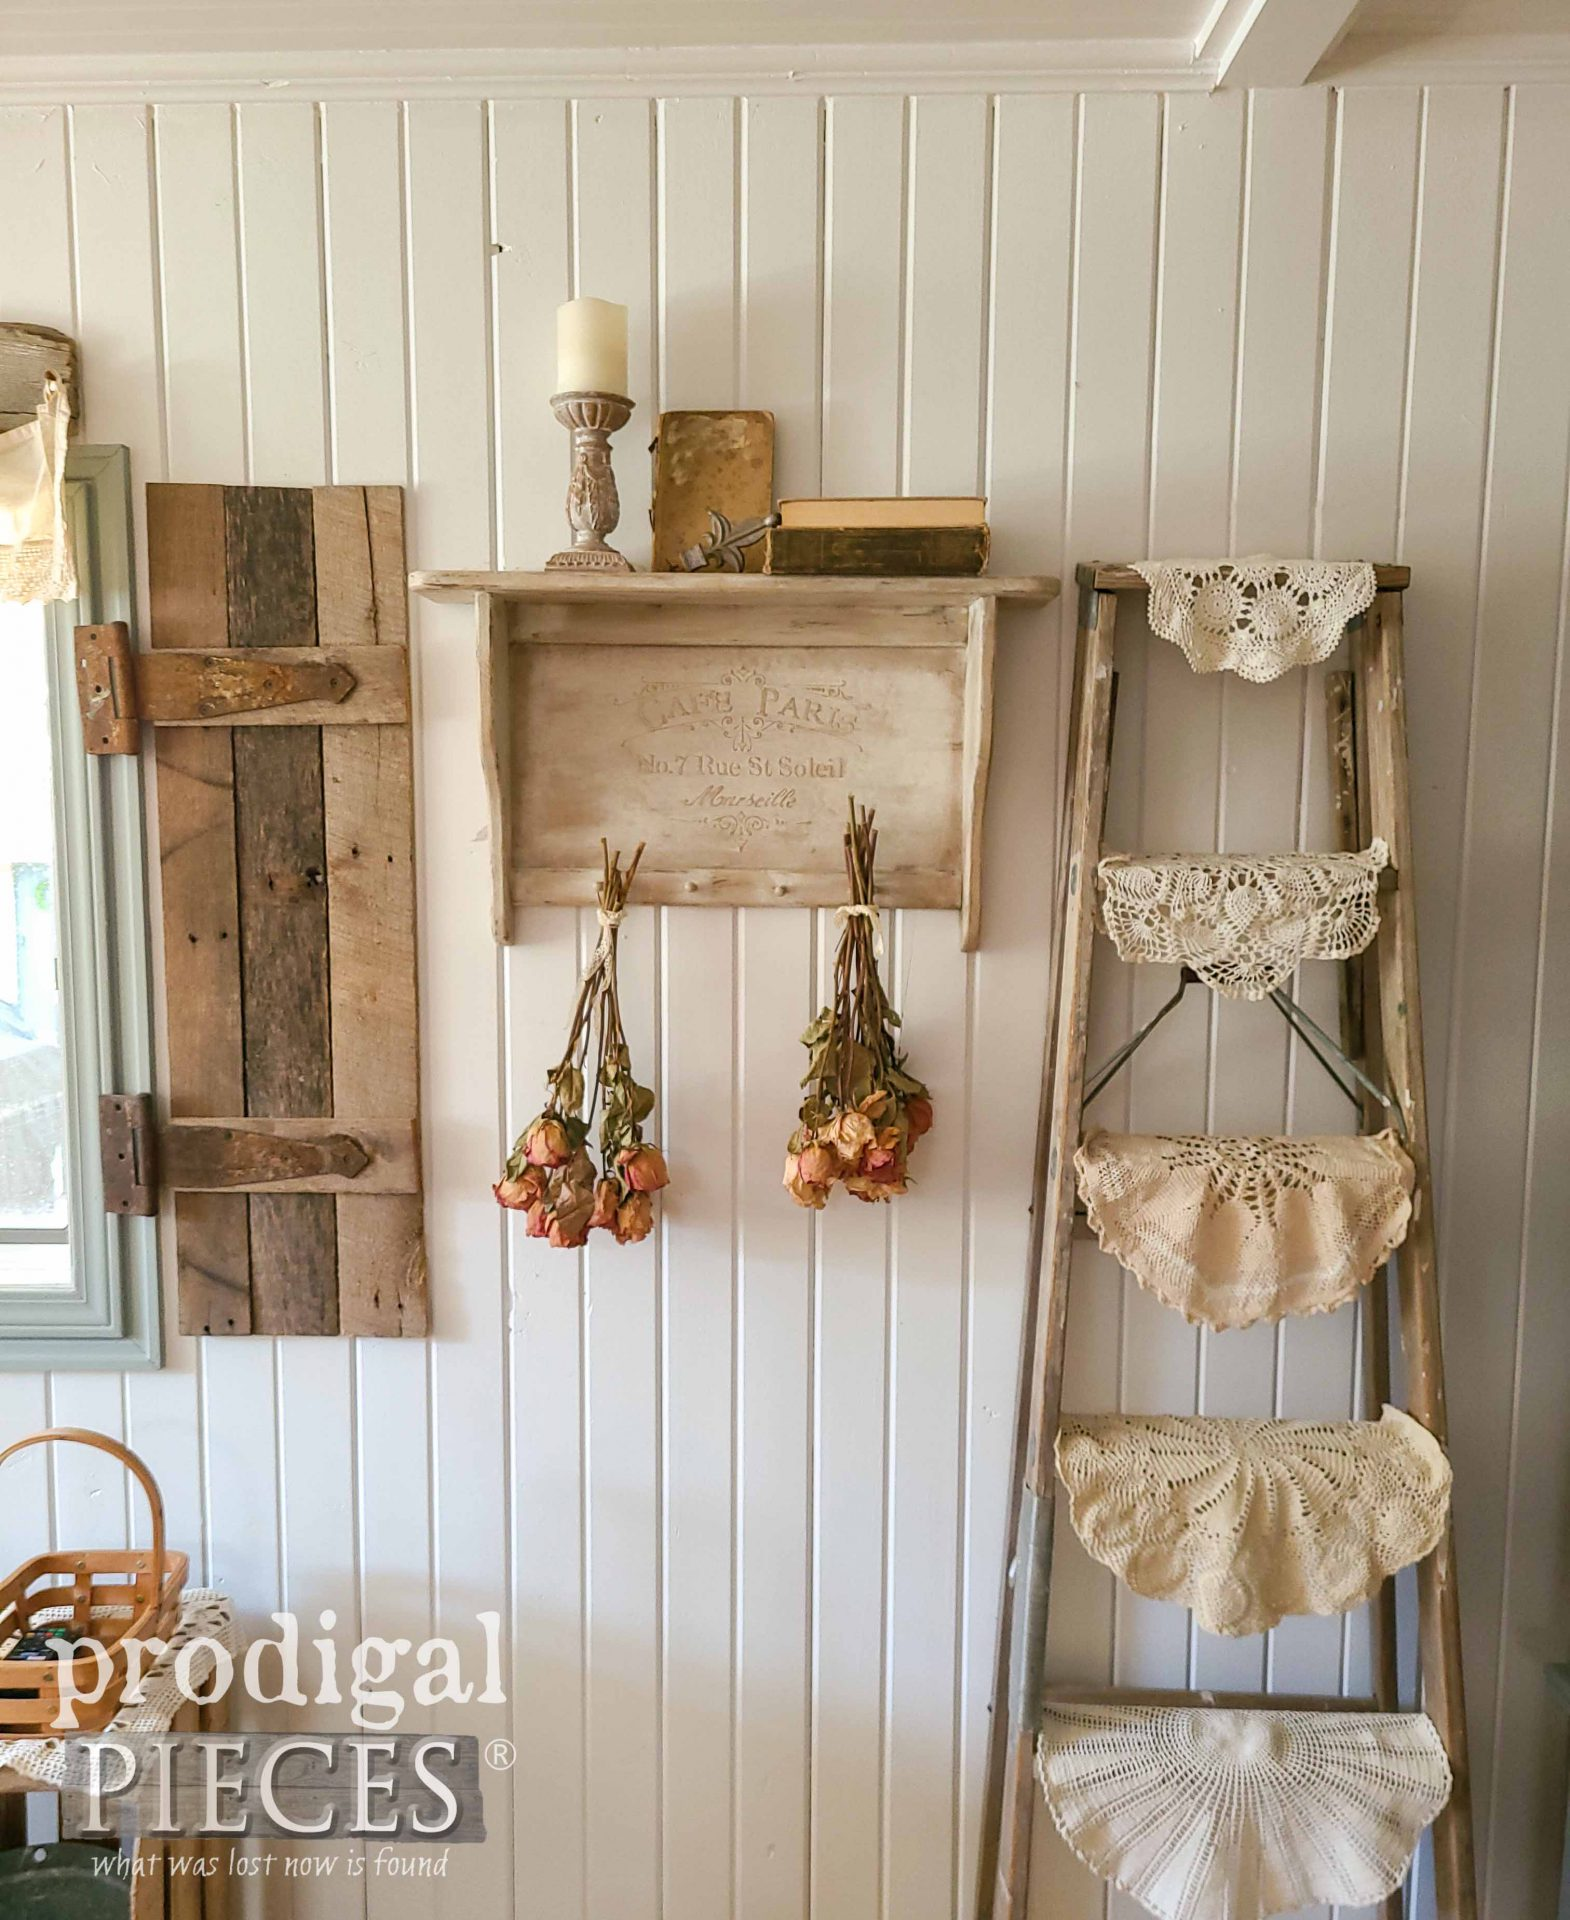 Farmhouse Chic Shelf with DIY Embossing by Larissa of Prodigal Pieces | prodigalpieces.com #prodigalpieces #farmhouse #diy #home #homedecor